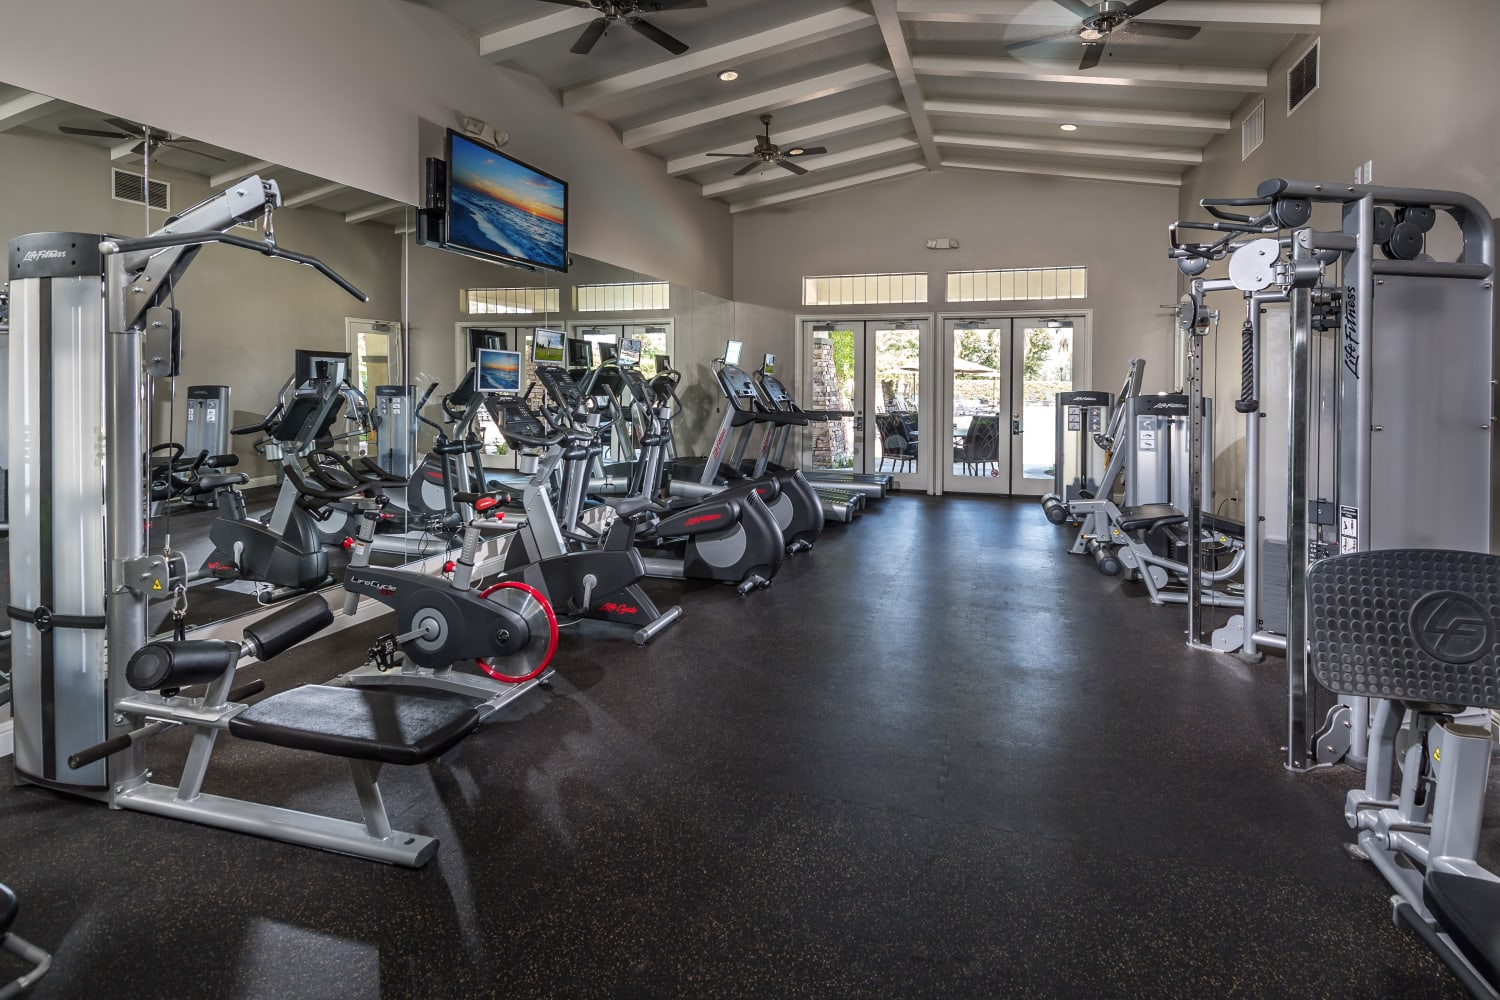 Fitness center at Camino Real in Rancho Cucamonga, California